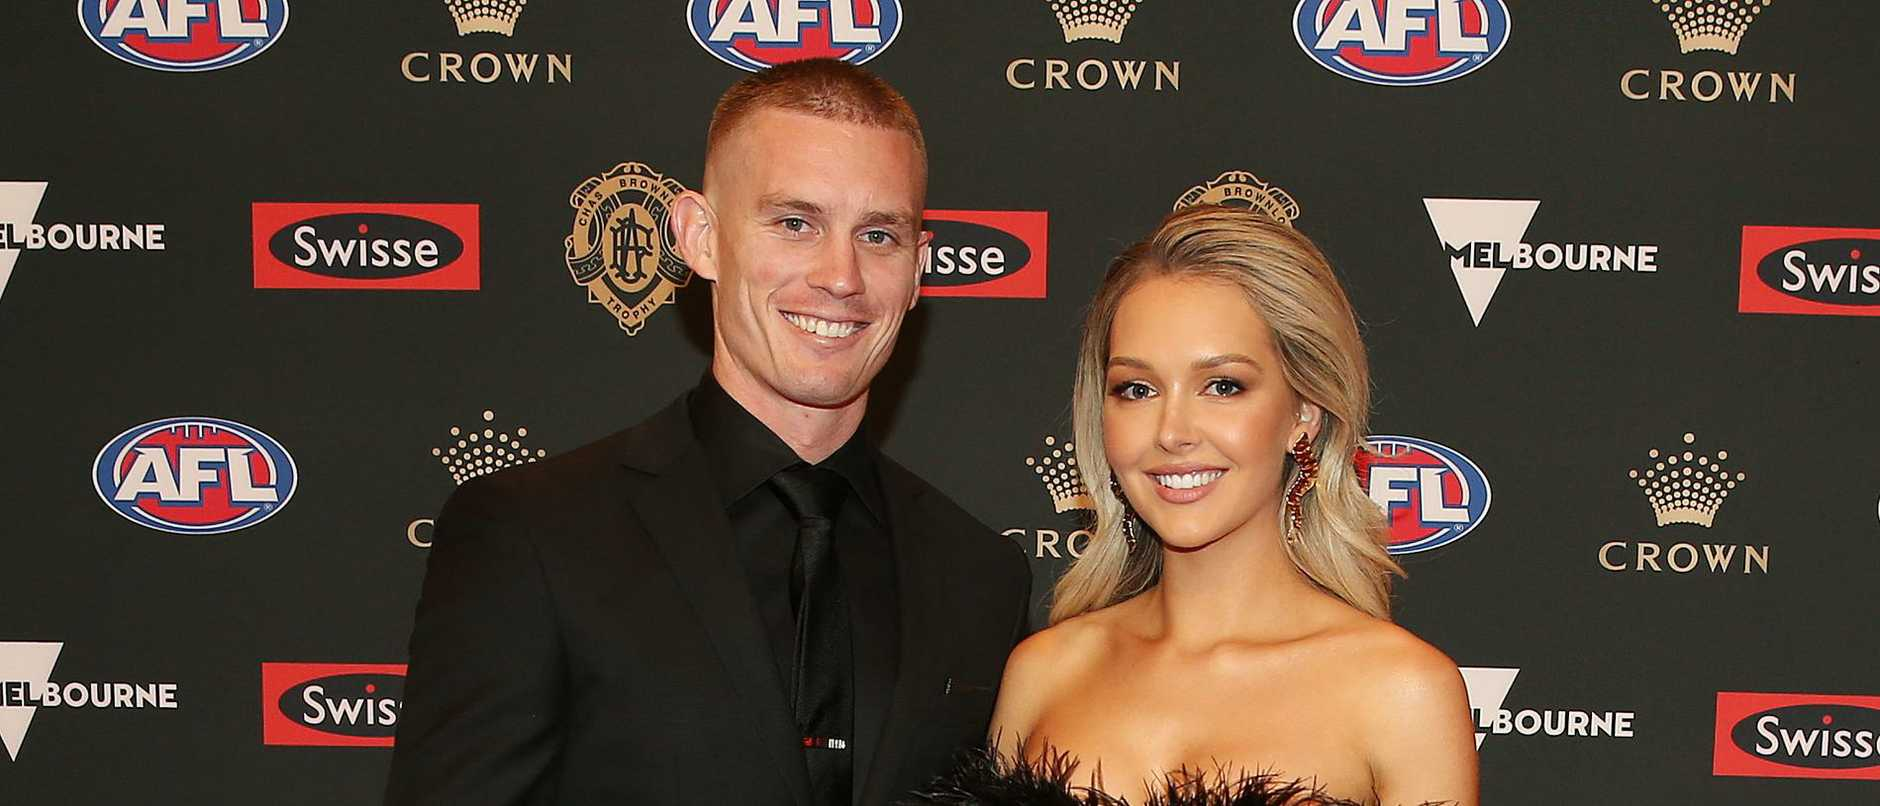 Dayne Beams and his wife Kelly. Picture: Michael Klein